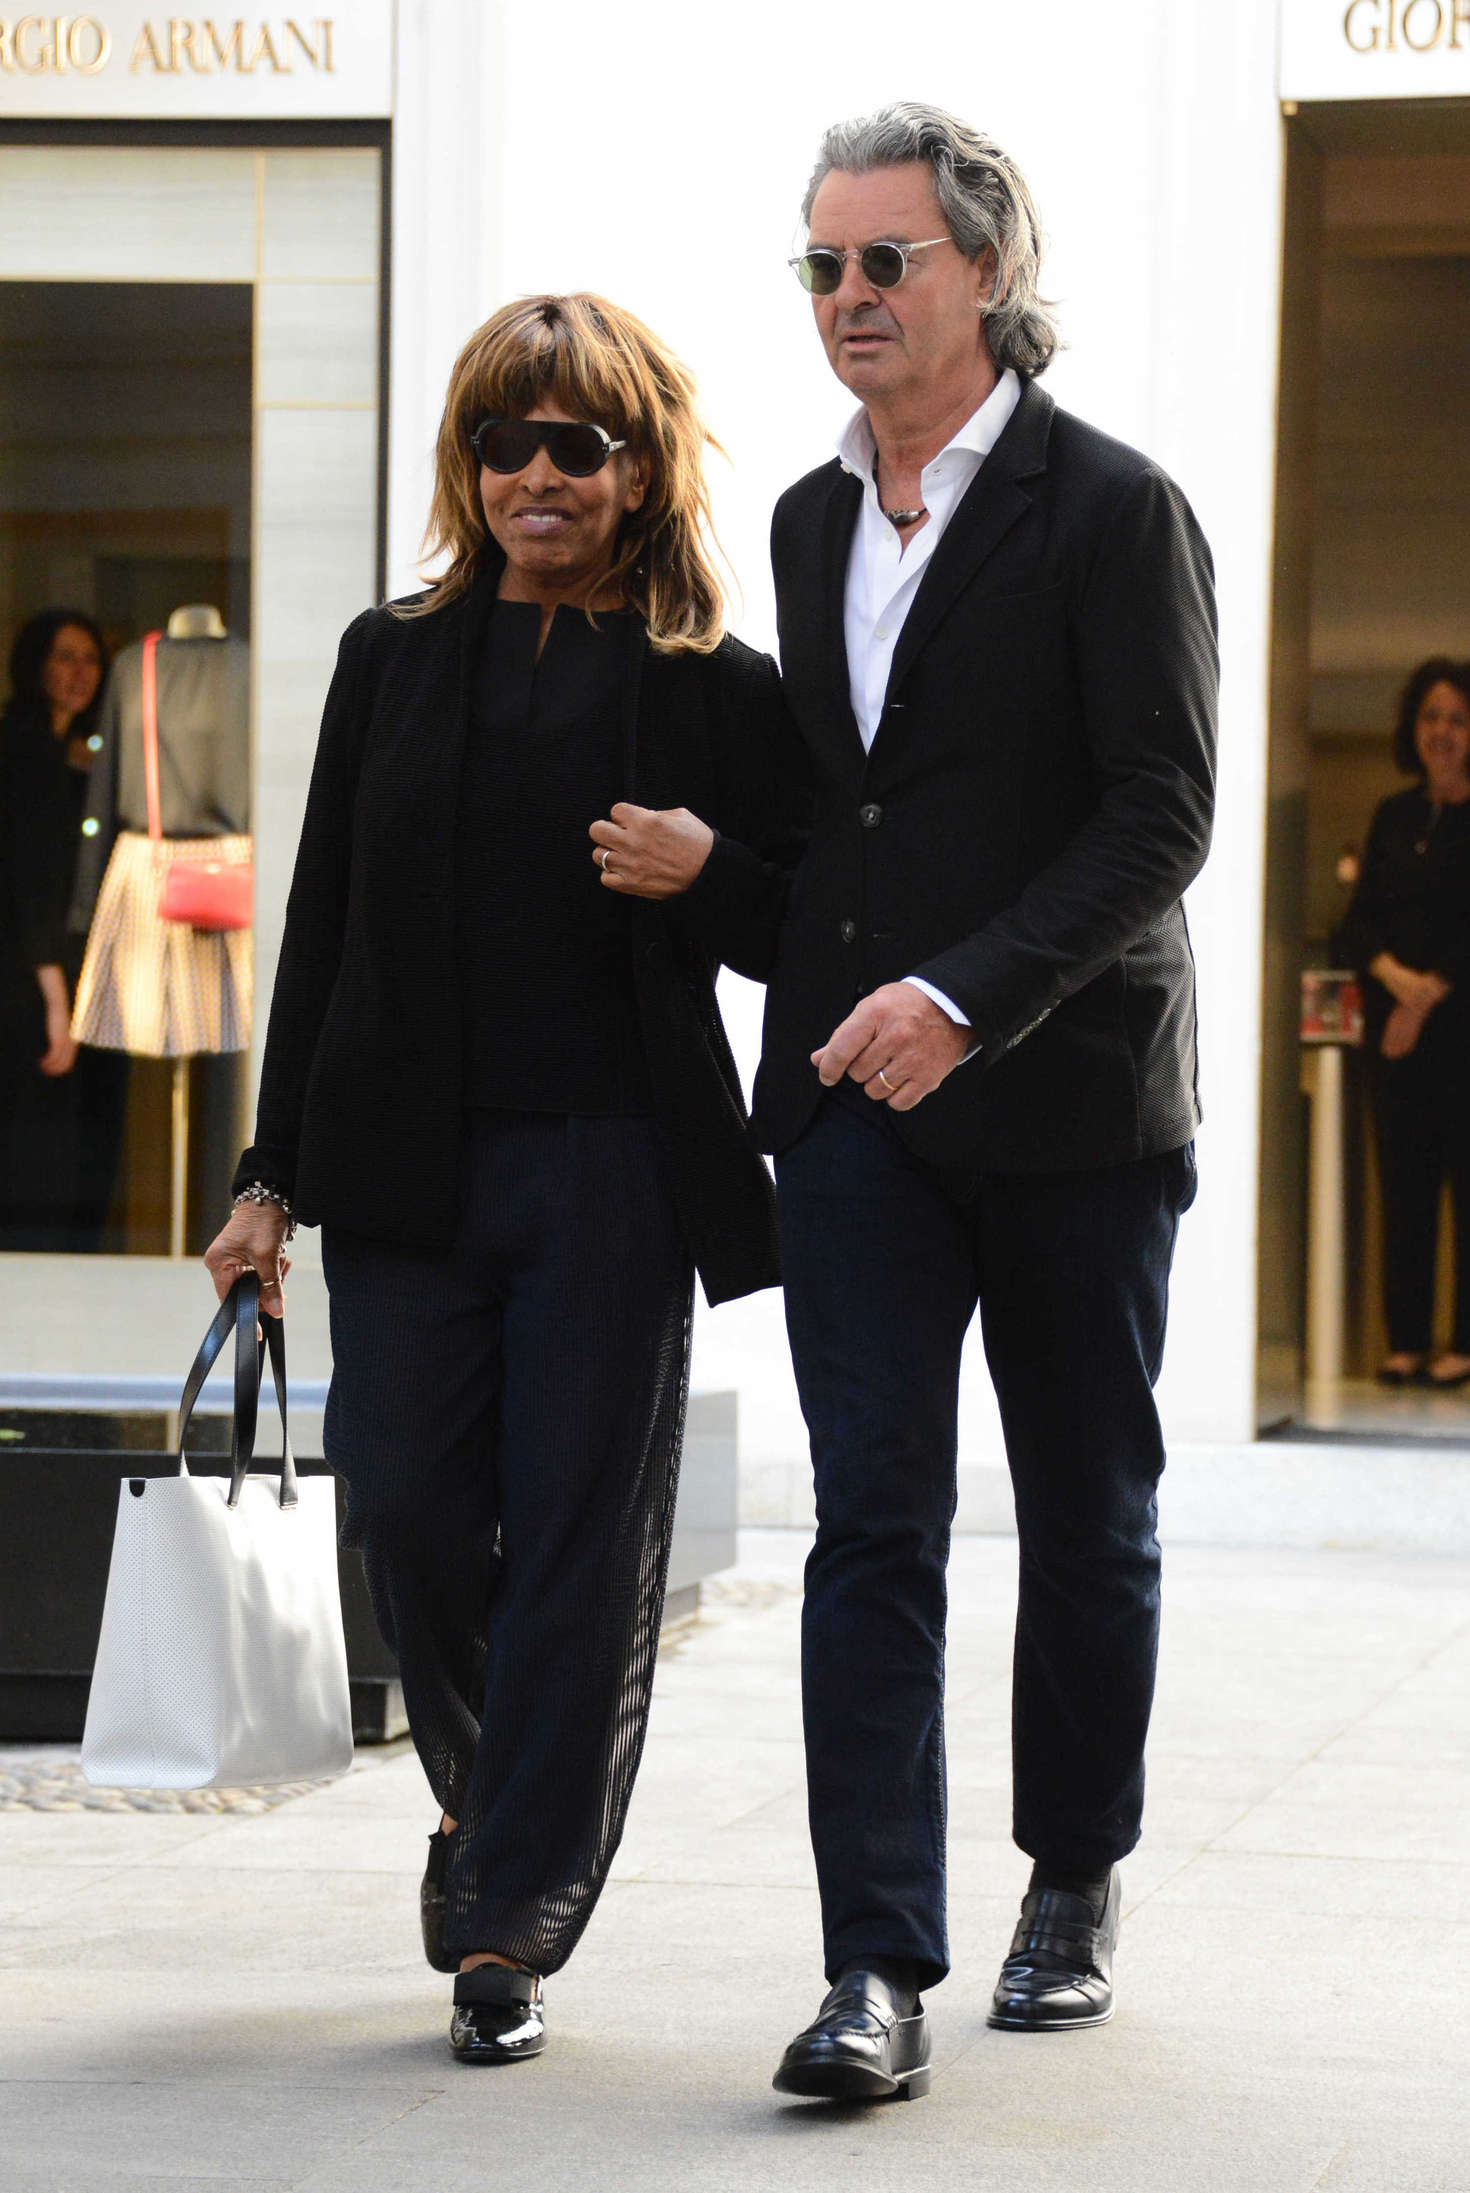 Tina Turner with her husband Erwin Bach on holiday in